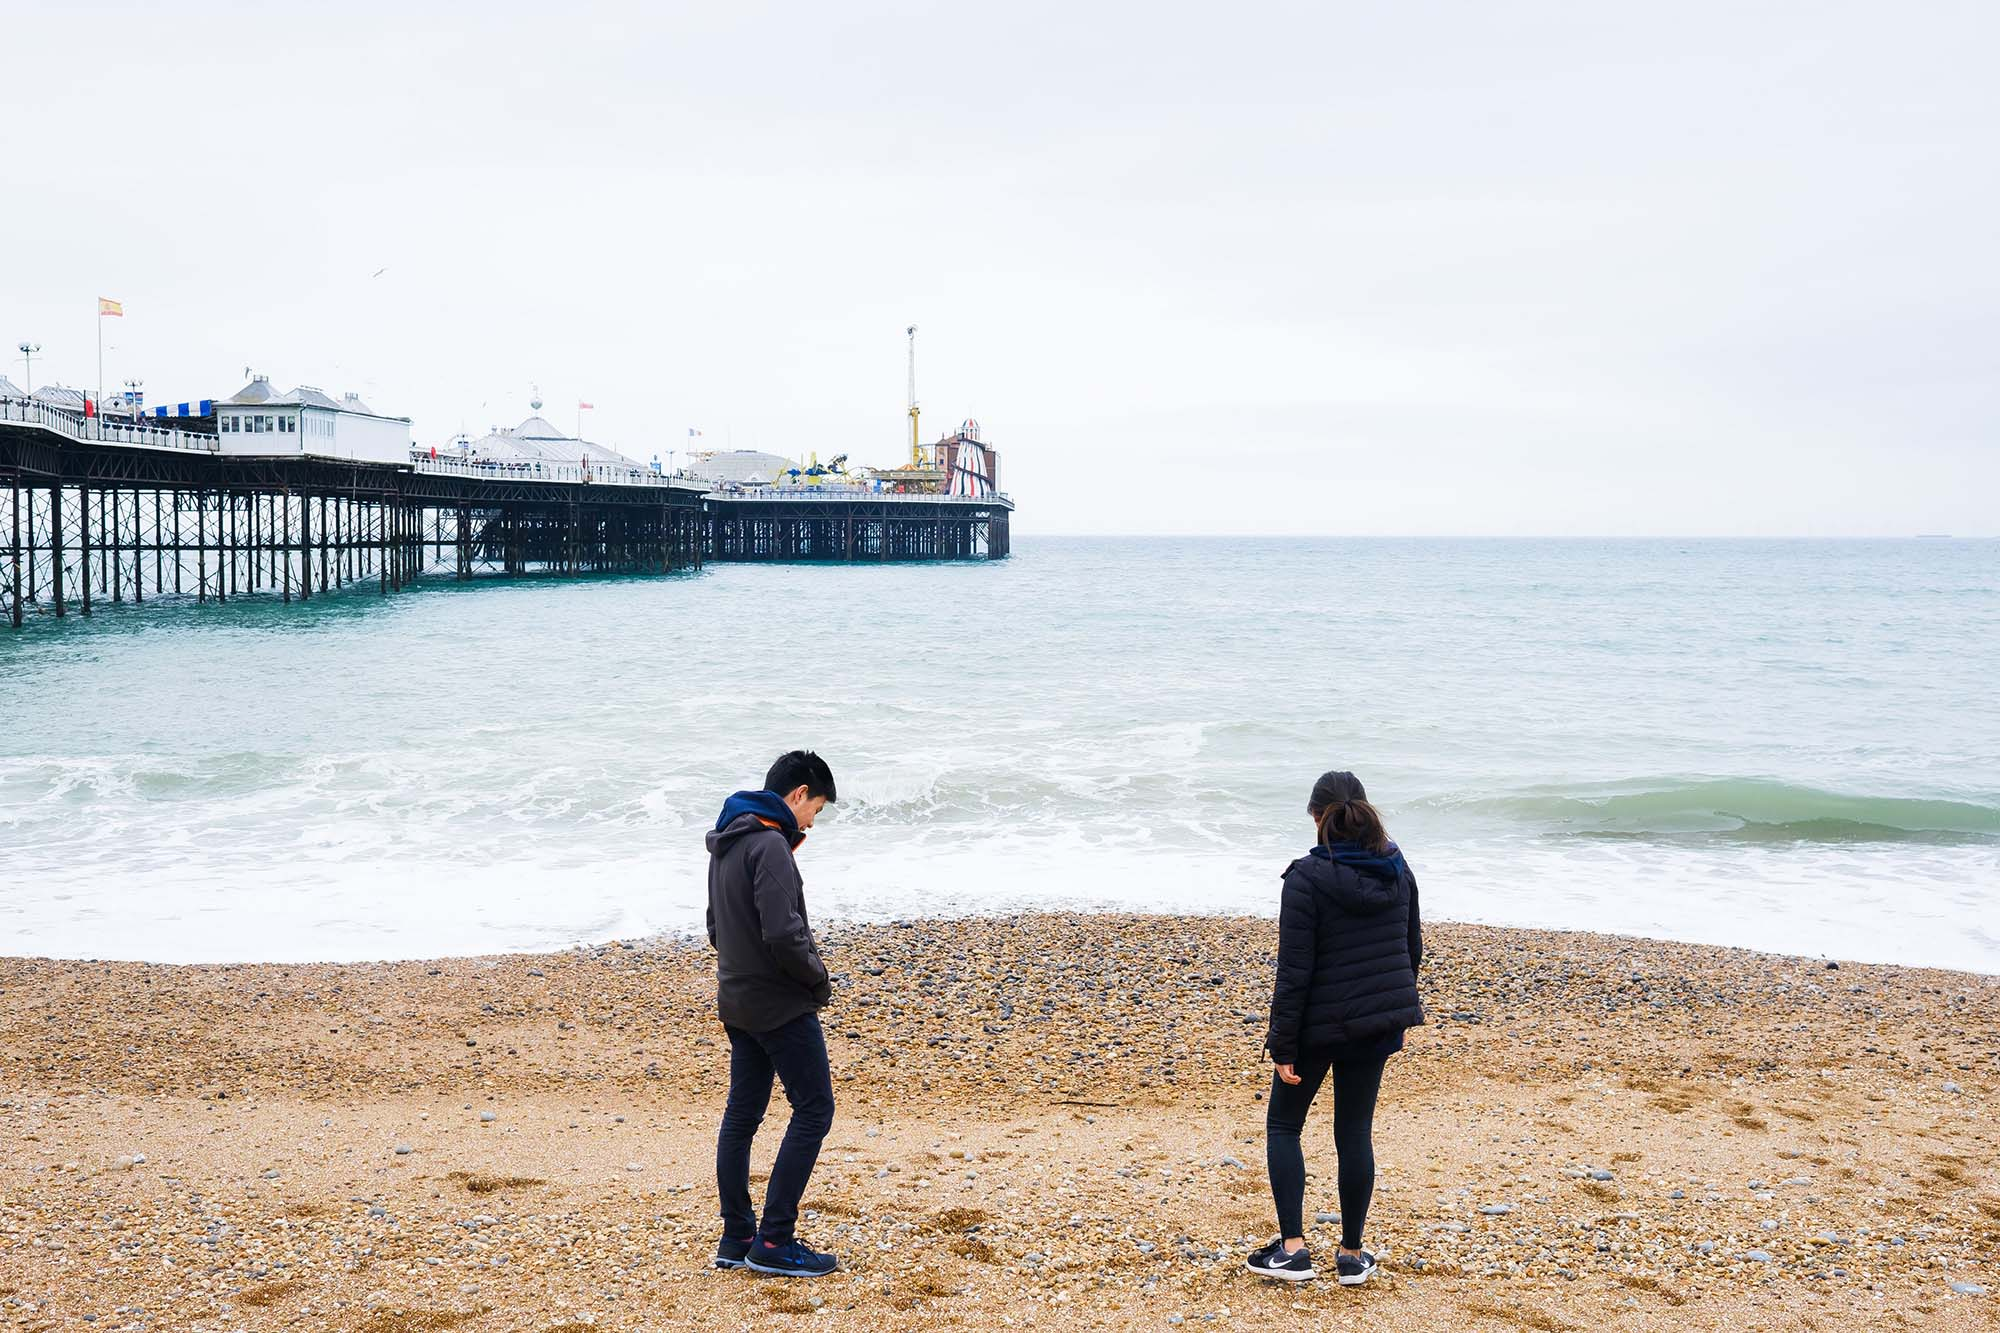 documenting Brighton 24hours 2018